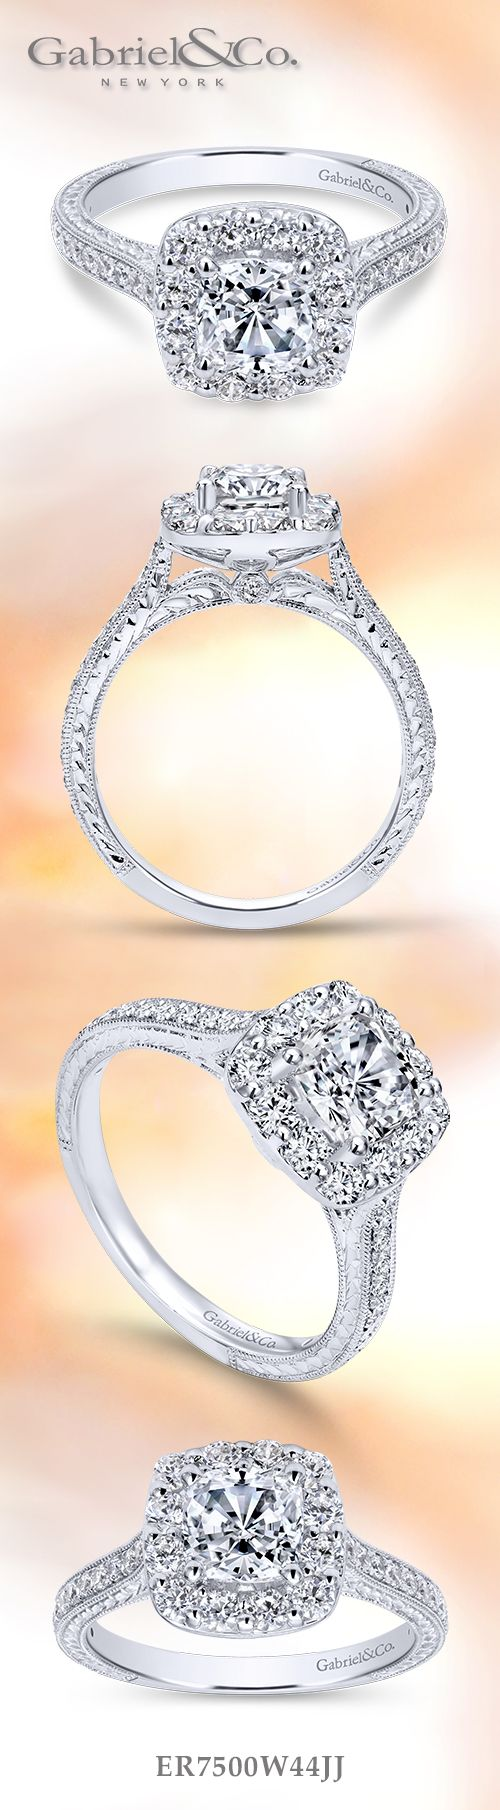 Gabriel & Co. - Voted #1 Most Preferred Bridal Brand.     An original, intricate White Gold Cushion Cut Halo Engagement Ring.